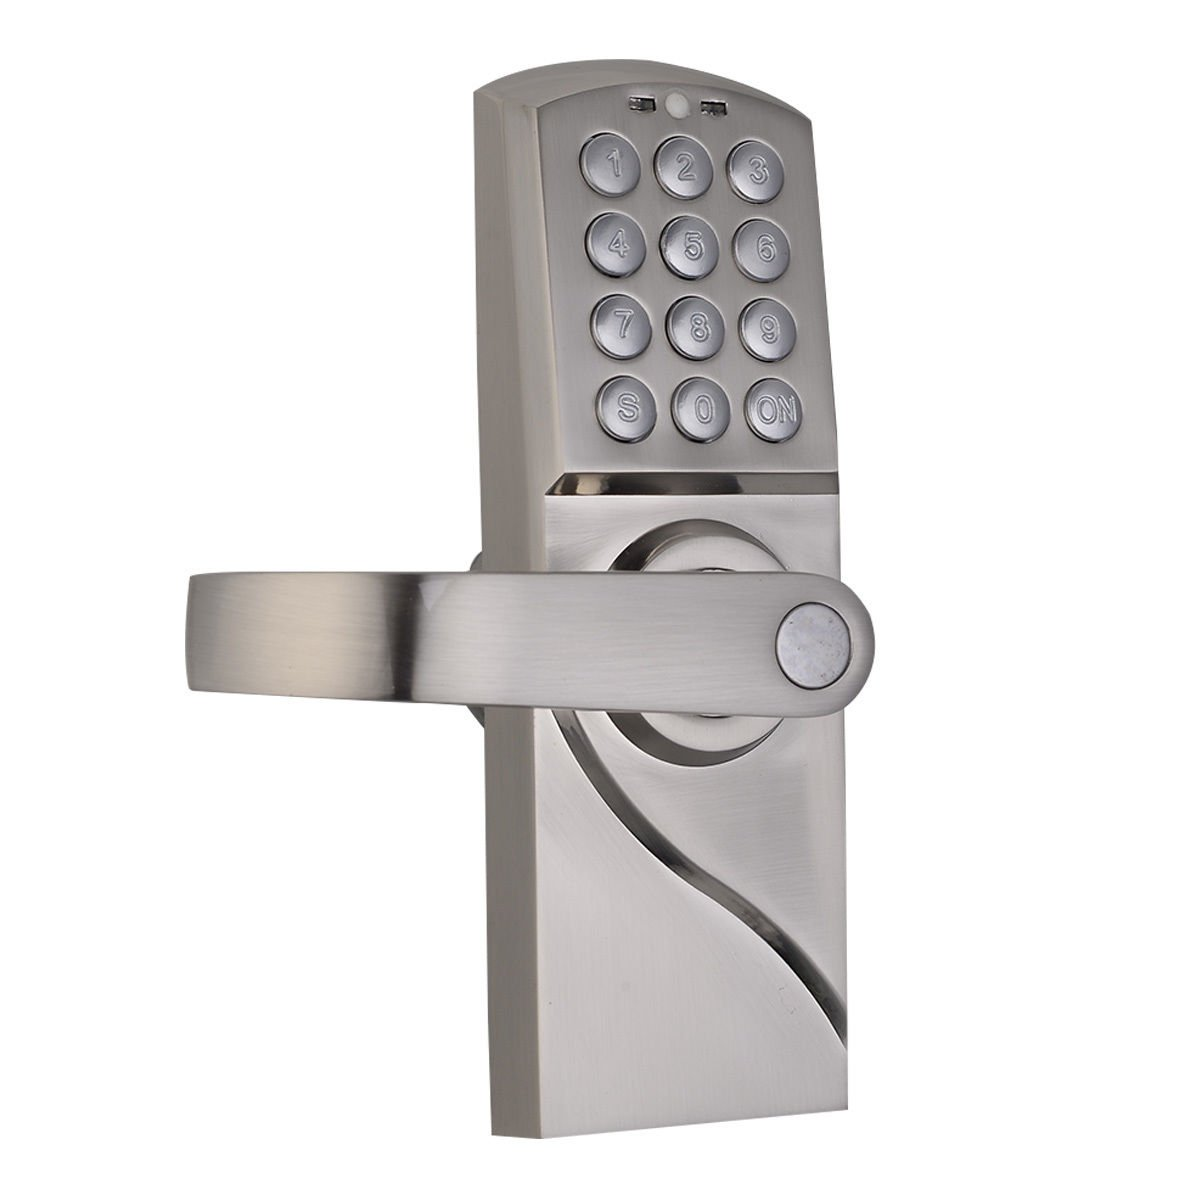 Security Door Locks. Amazon.com: Digital Electronic Security Entry Door Lock  Left Handle